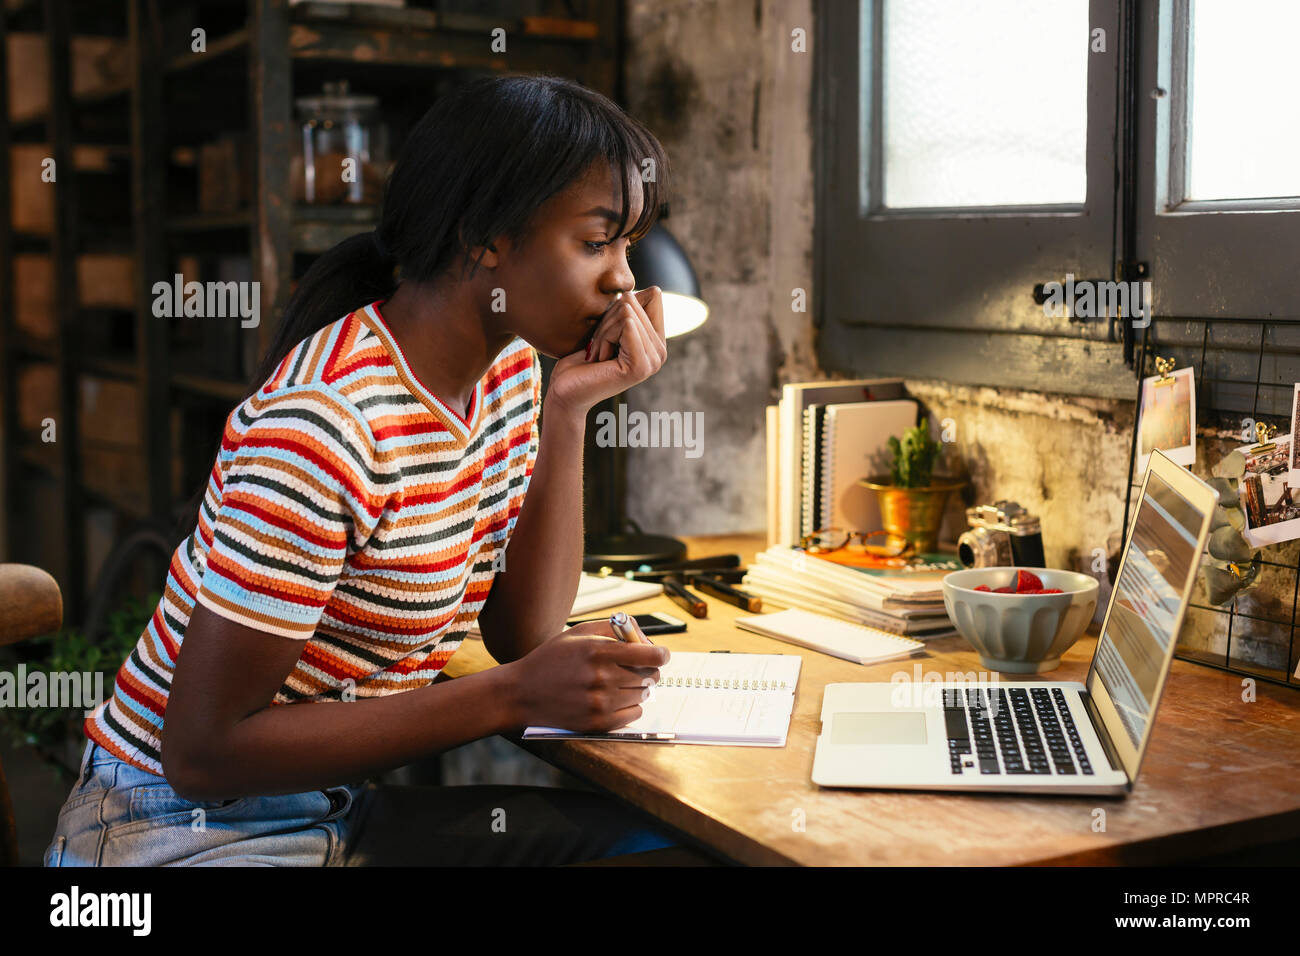 Pensive young woman sitting at desk in a loft looking at laptop - Stock Image